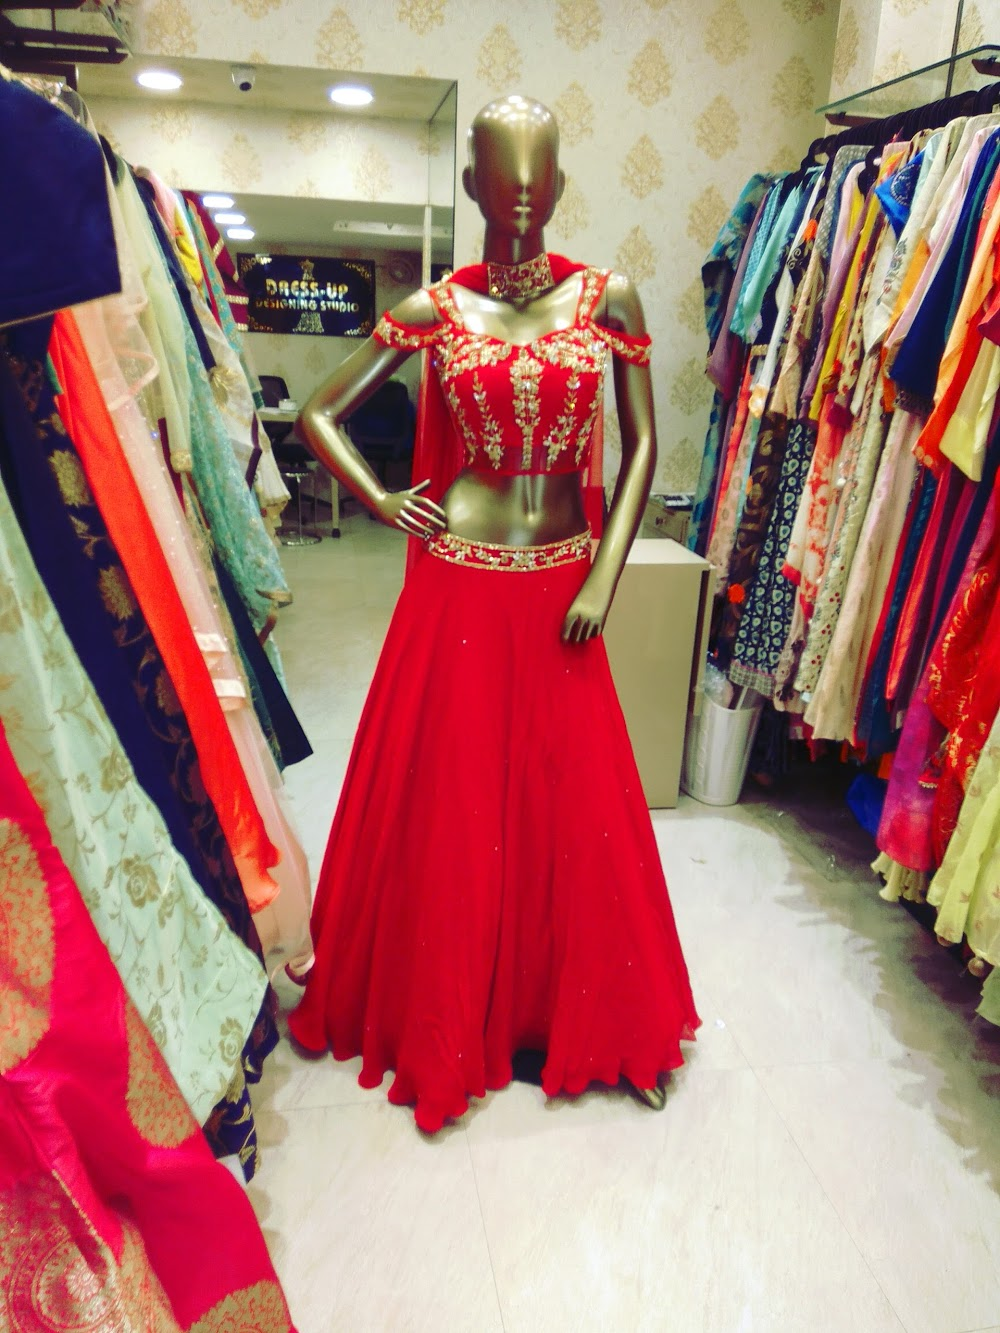 Photos Of Dress Up Designing Studio Lokhandwala Complex Andheri West Mumbai Magicpin